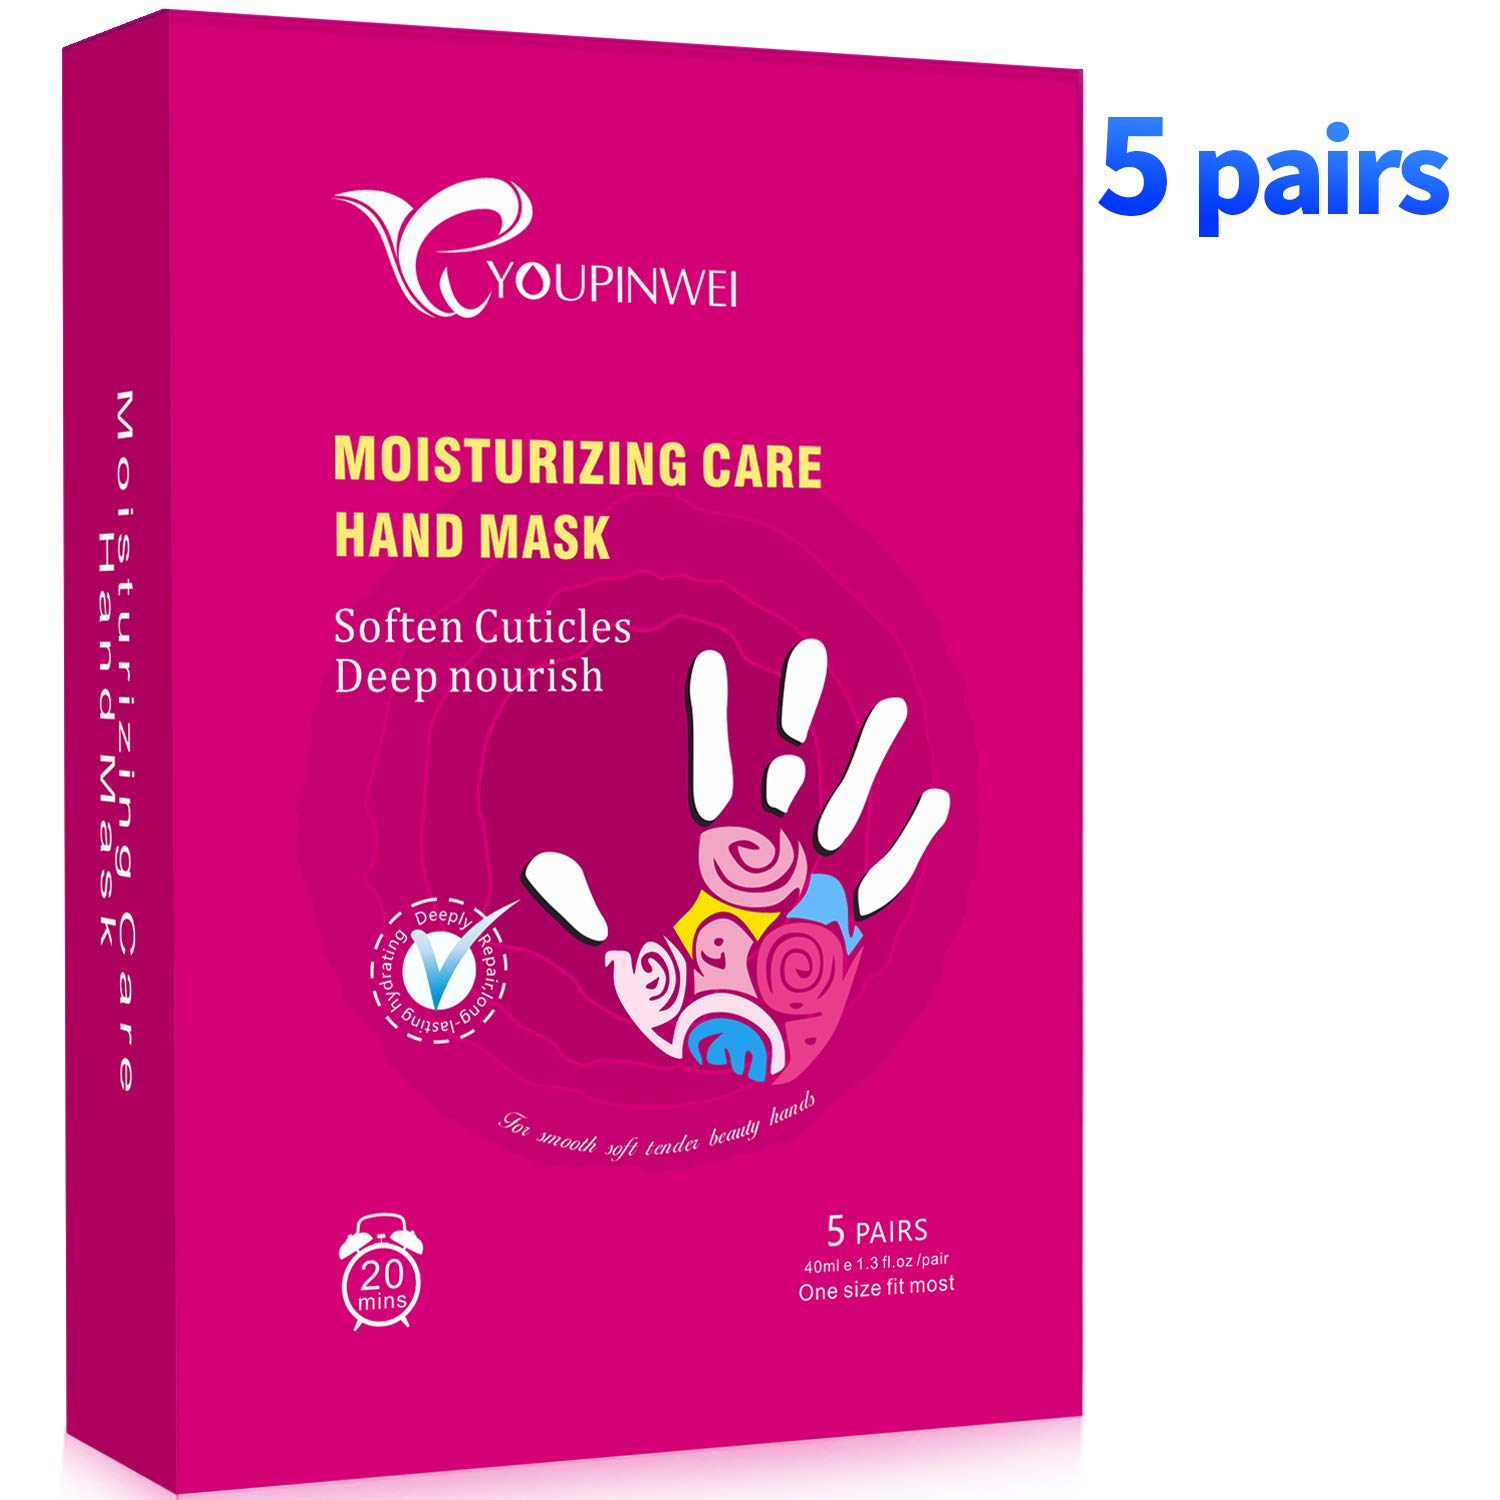 YOUPINWEI Moisturizing Foot Mask Treatment for Cracked Heels and Dry Feet Deeply Repair, Care for Long-lasting Hydrating & Nourishing Socks for Smoother and Softer Feet (5Pairs/Box) Ltd